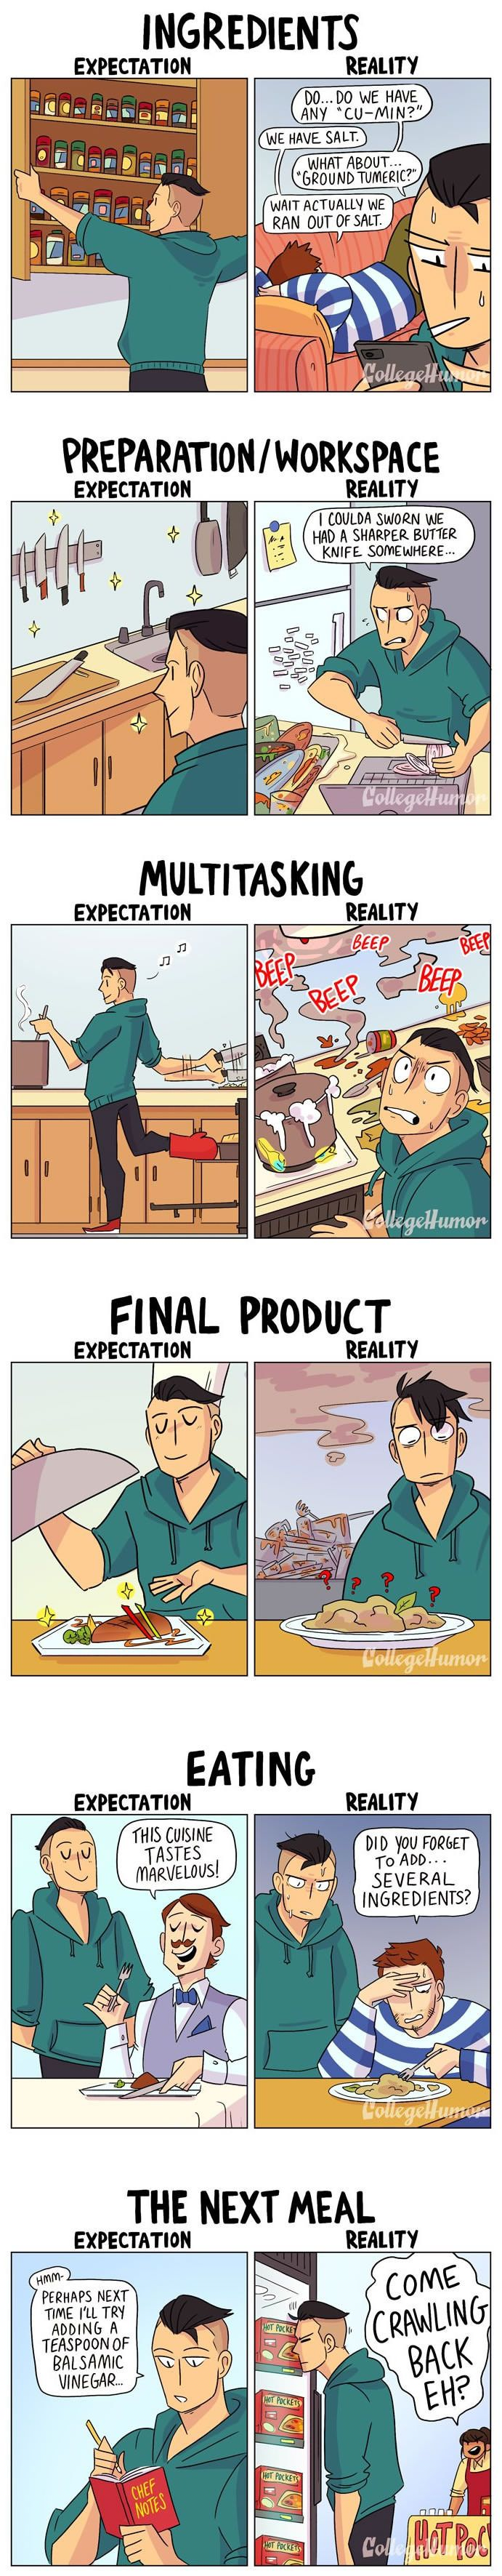 Cooking: Expectation vs Reality